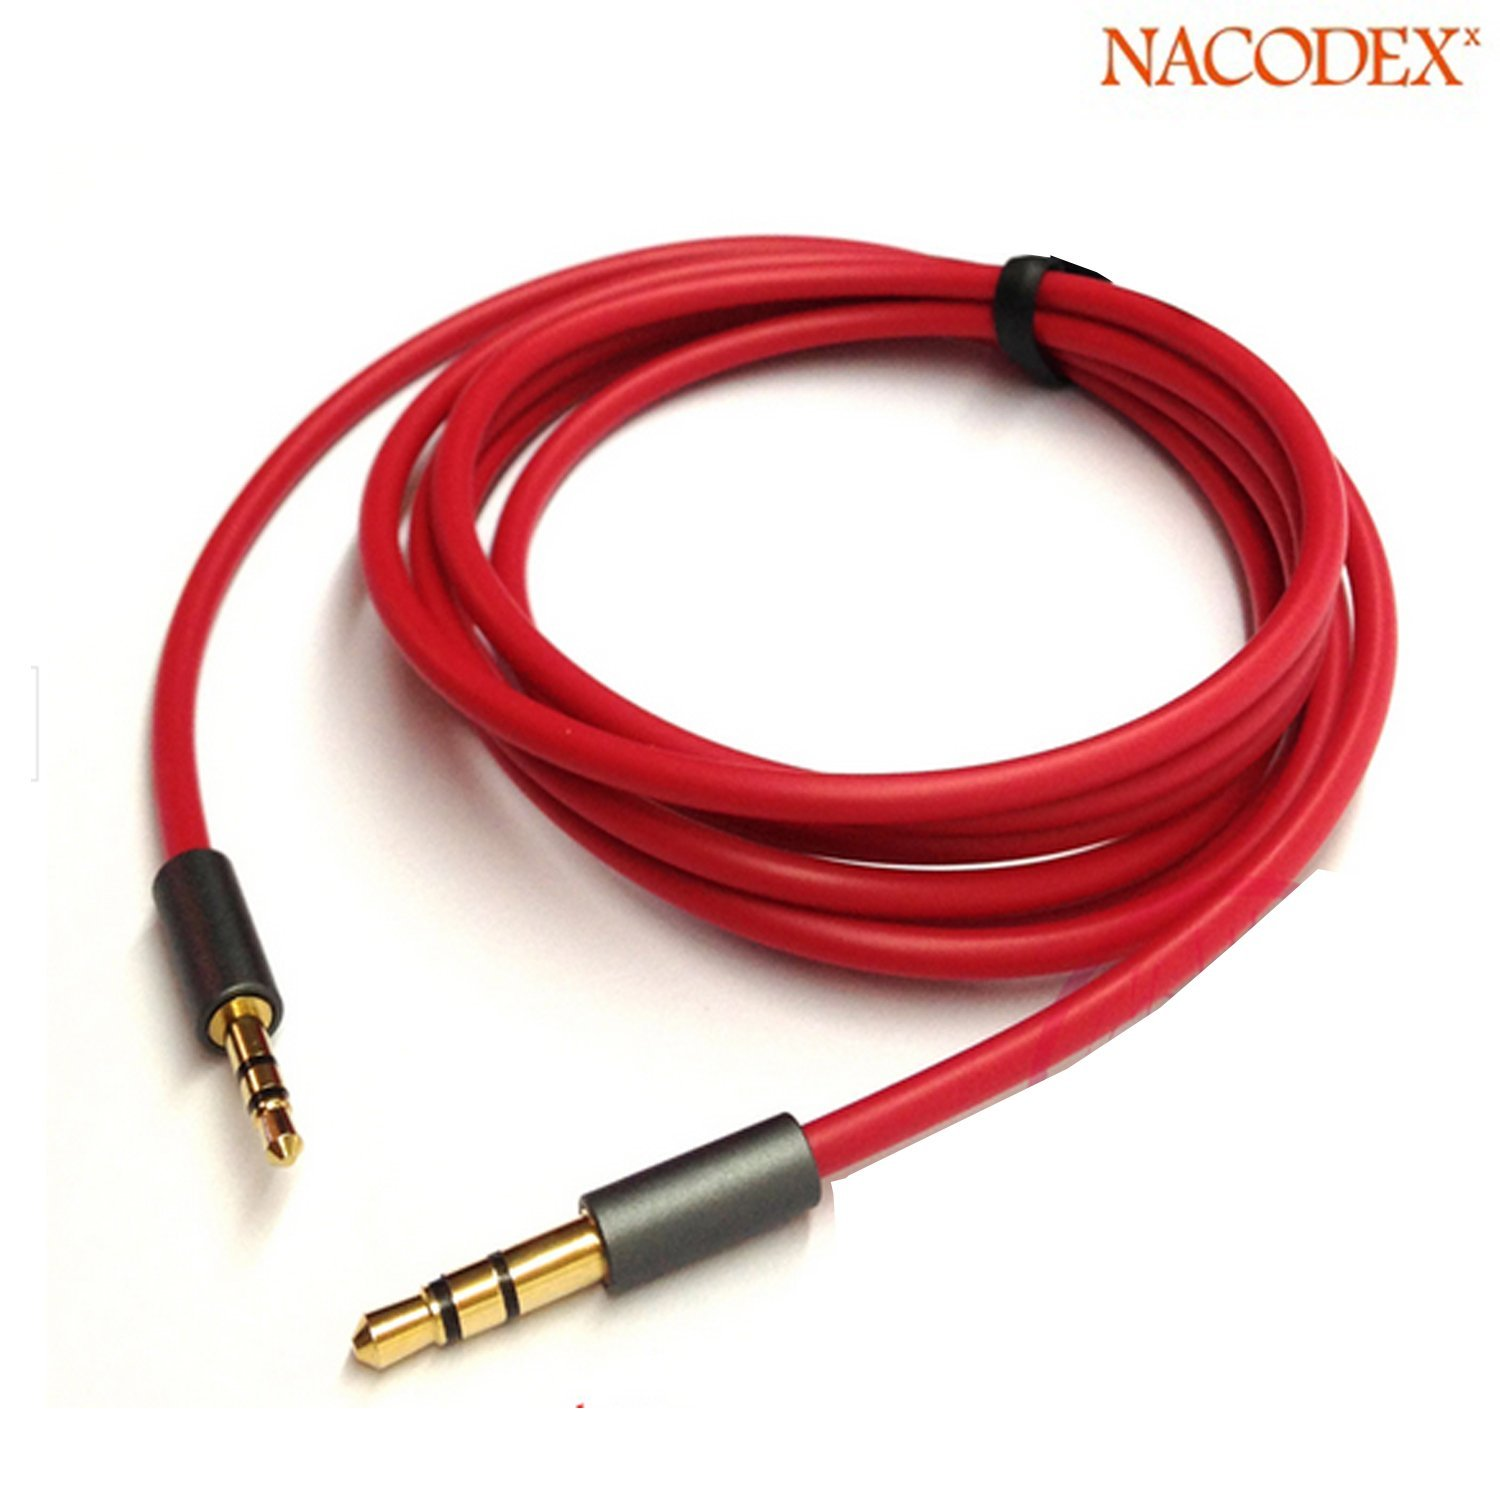 Cheap 3 5 Mm Audio Cable High Quality, find 3 5 Mm Audio Cable High ...